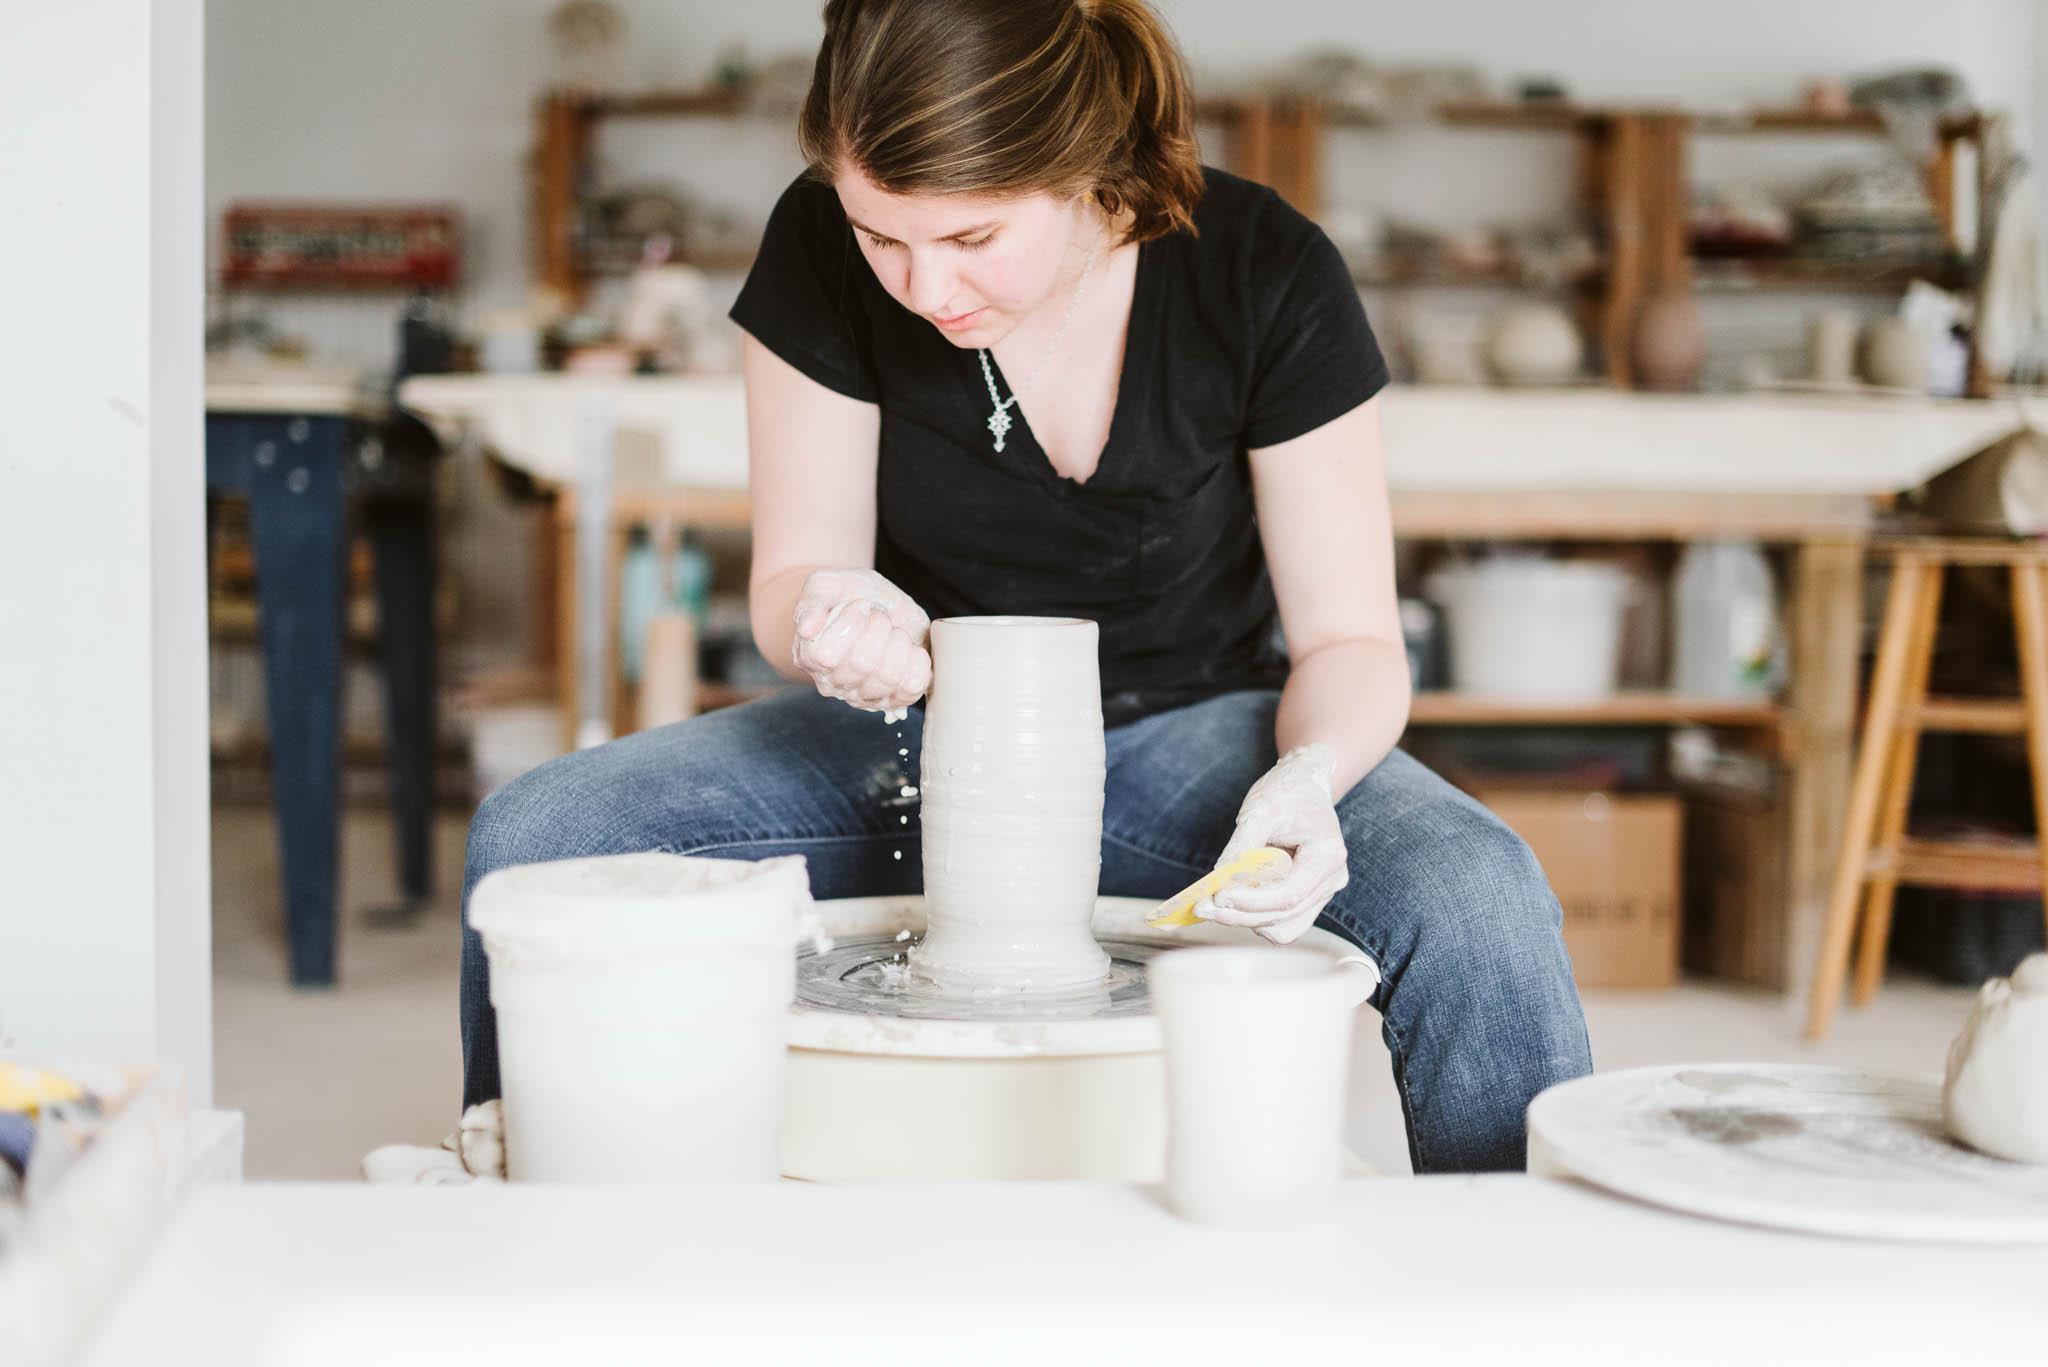 Kirsten-Smith-Photography-Reagan-Ashley-Pottery123.jpg